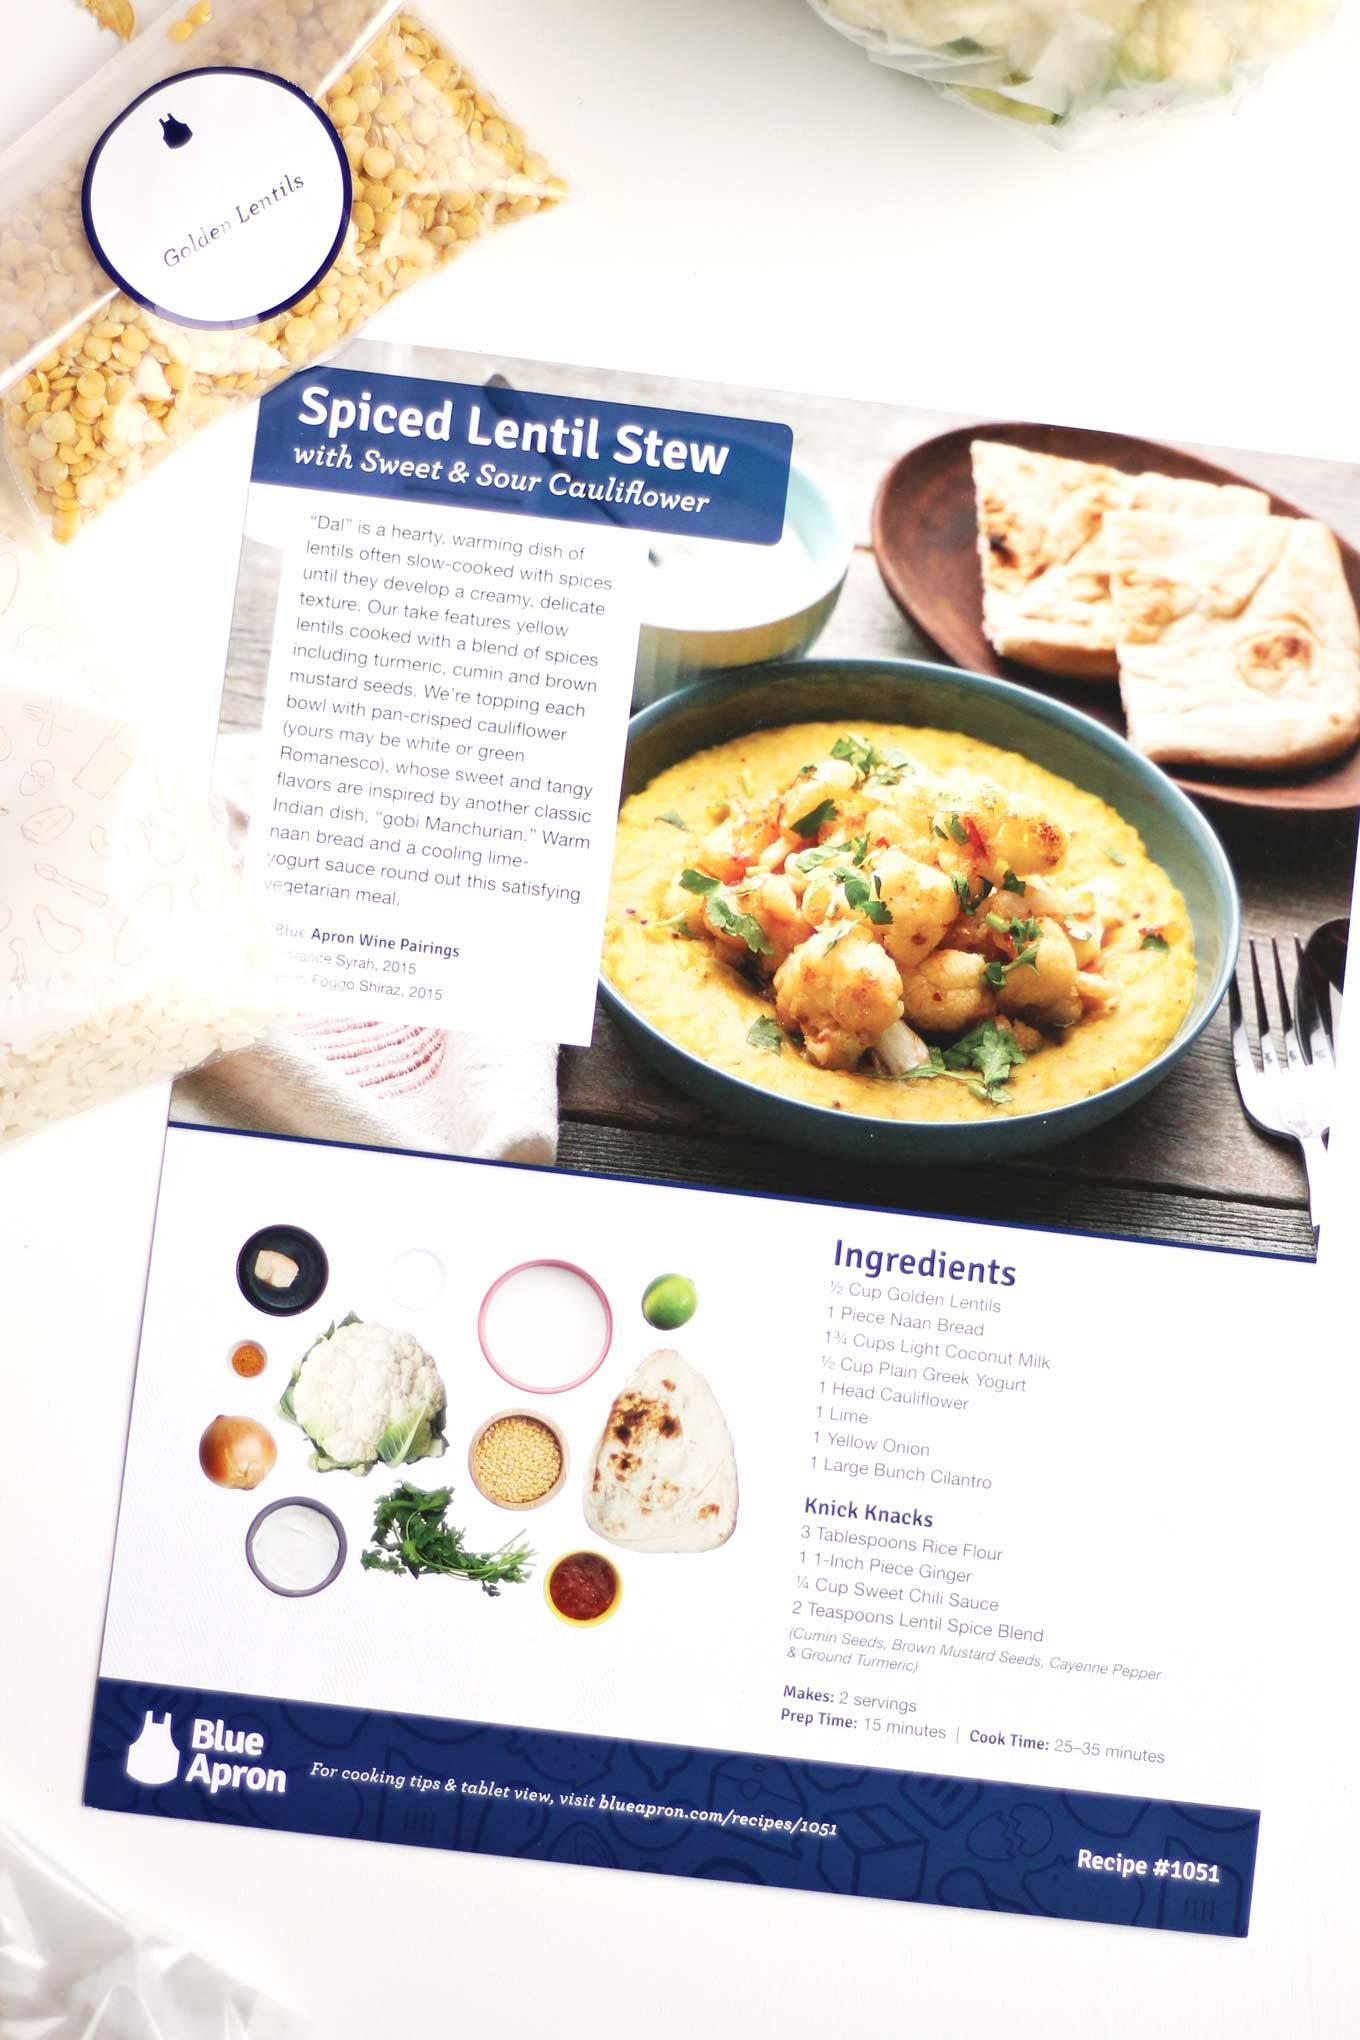 Blue apron lentil spice blend - Spiced Lentil Stew With Sweet And Sour Cauliflower Recipe Yellow Lentils Stew And Gluten